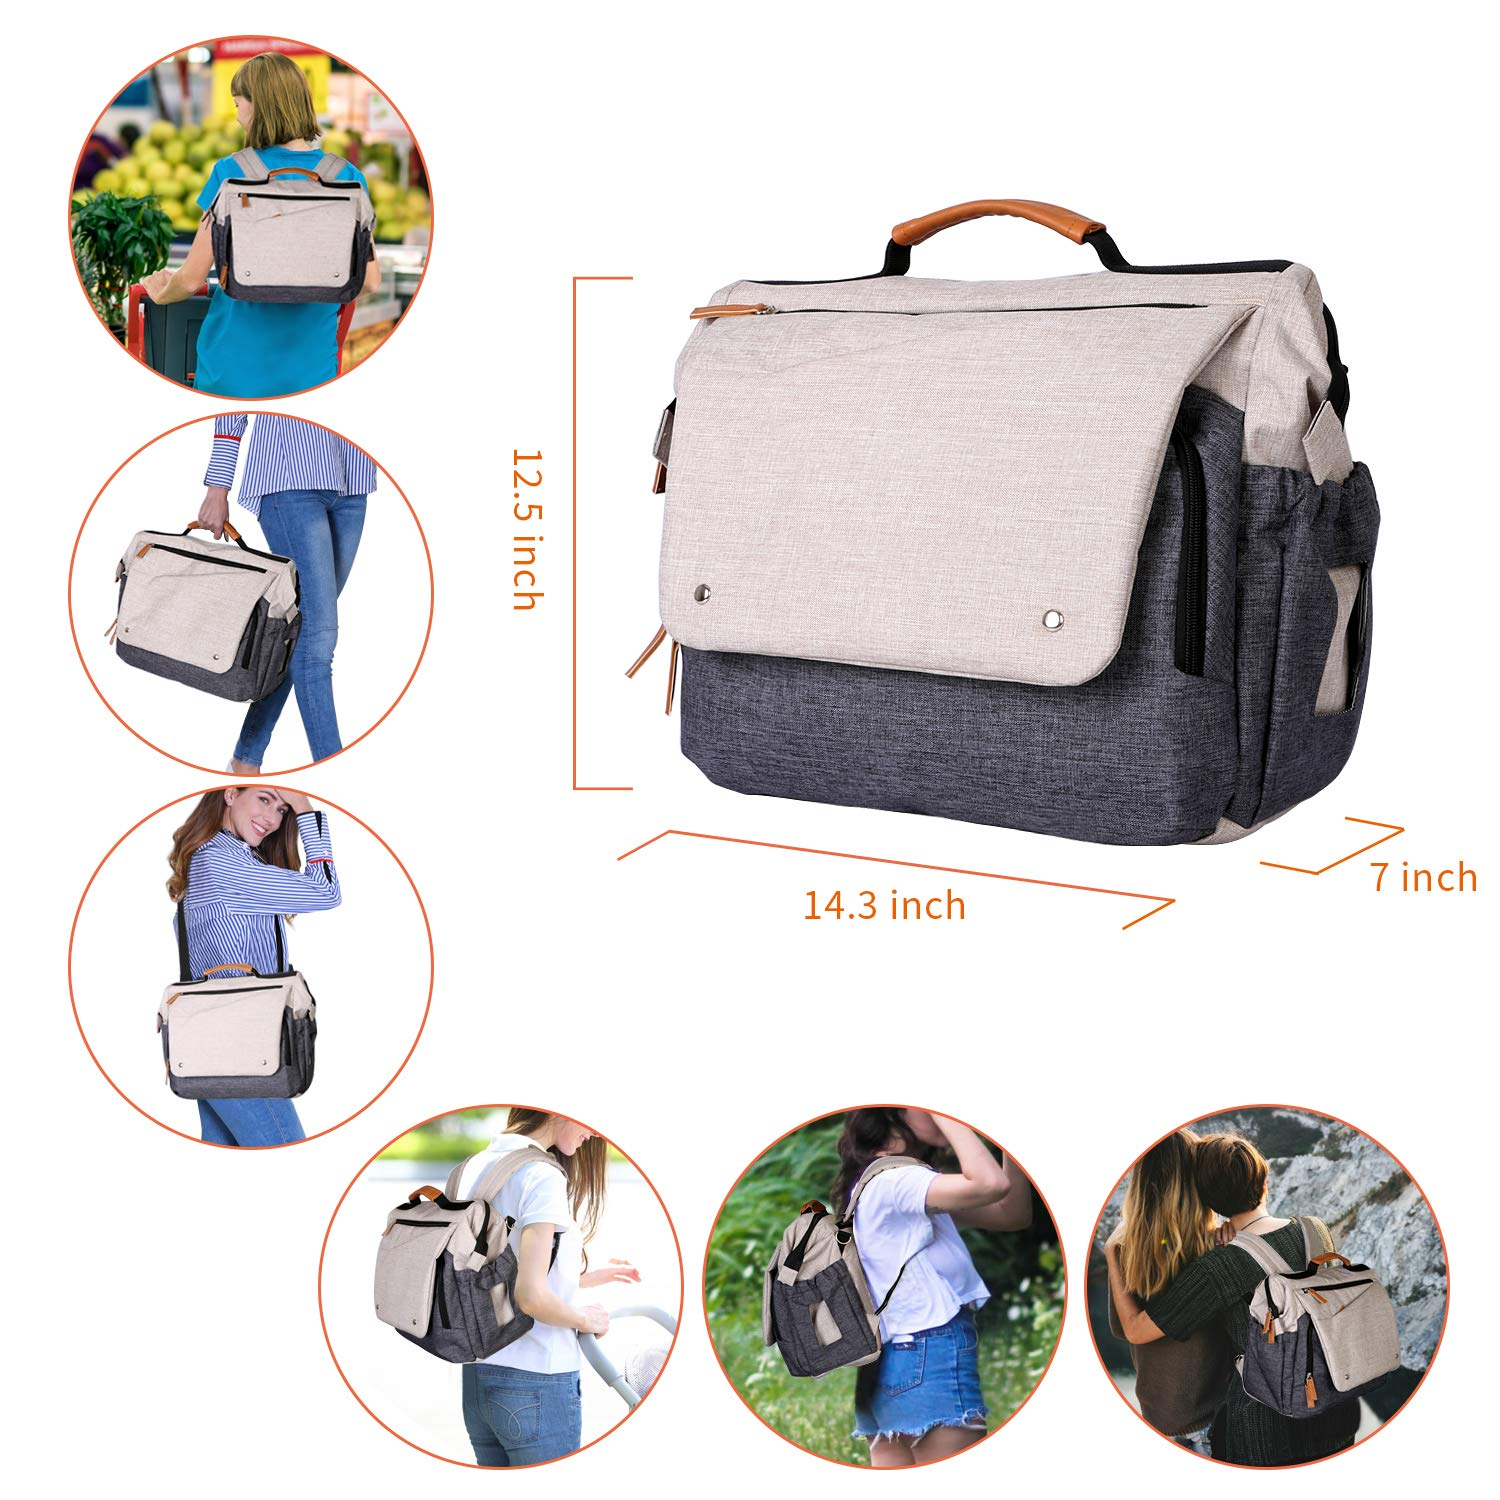 Zpoint 8015 Large Diaper Bag, Mom & Dad Backpack, Multi-function Travel Baby Nappy Changing, Water Resistant Maternity Messenger Bag with Stroller Belts, Beige/Grey